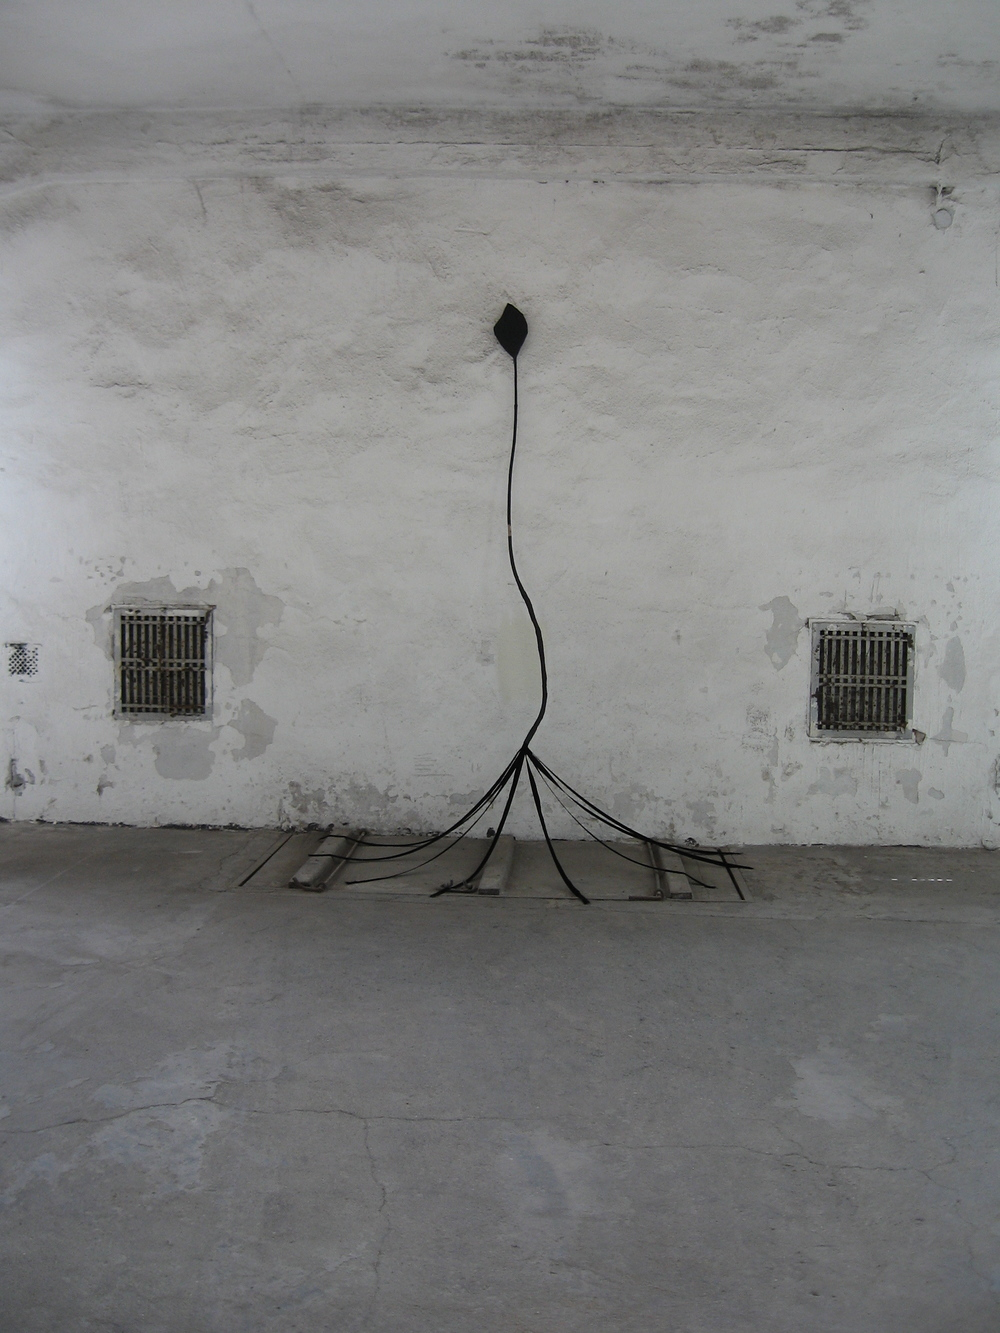 Untitled (tethered arrow), 2010, tree branch, papier-mâché, velvet ribbons, charcoal, H 7' x W 4.5' x D 3'